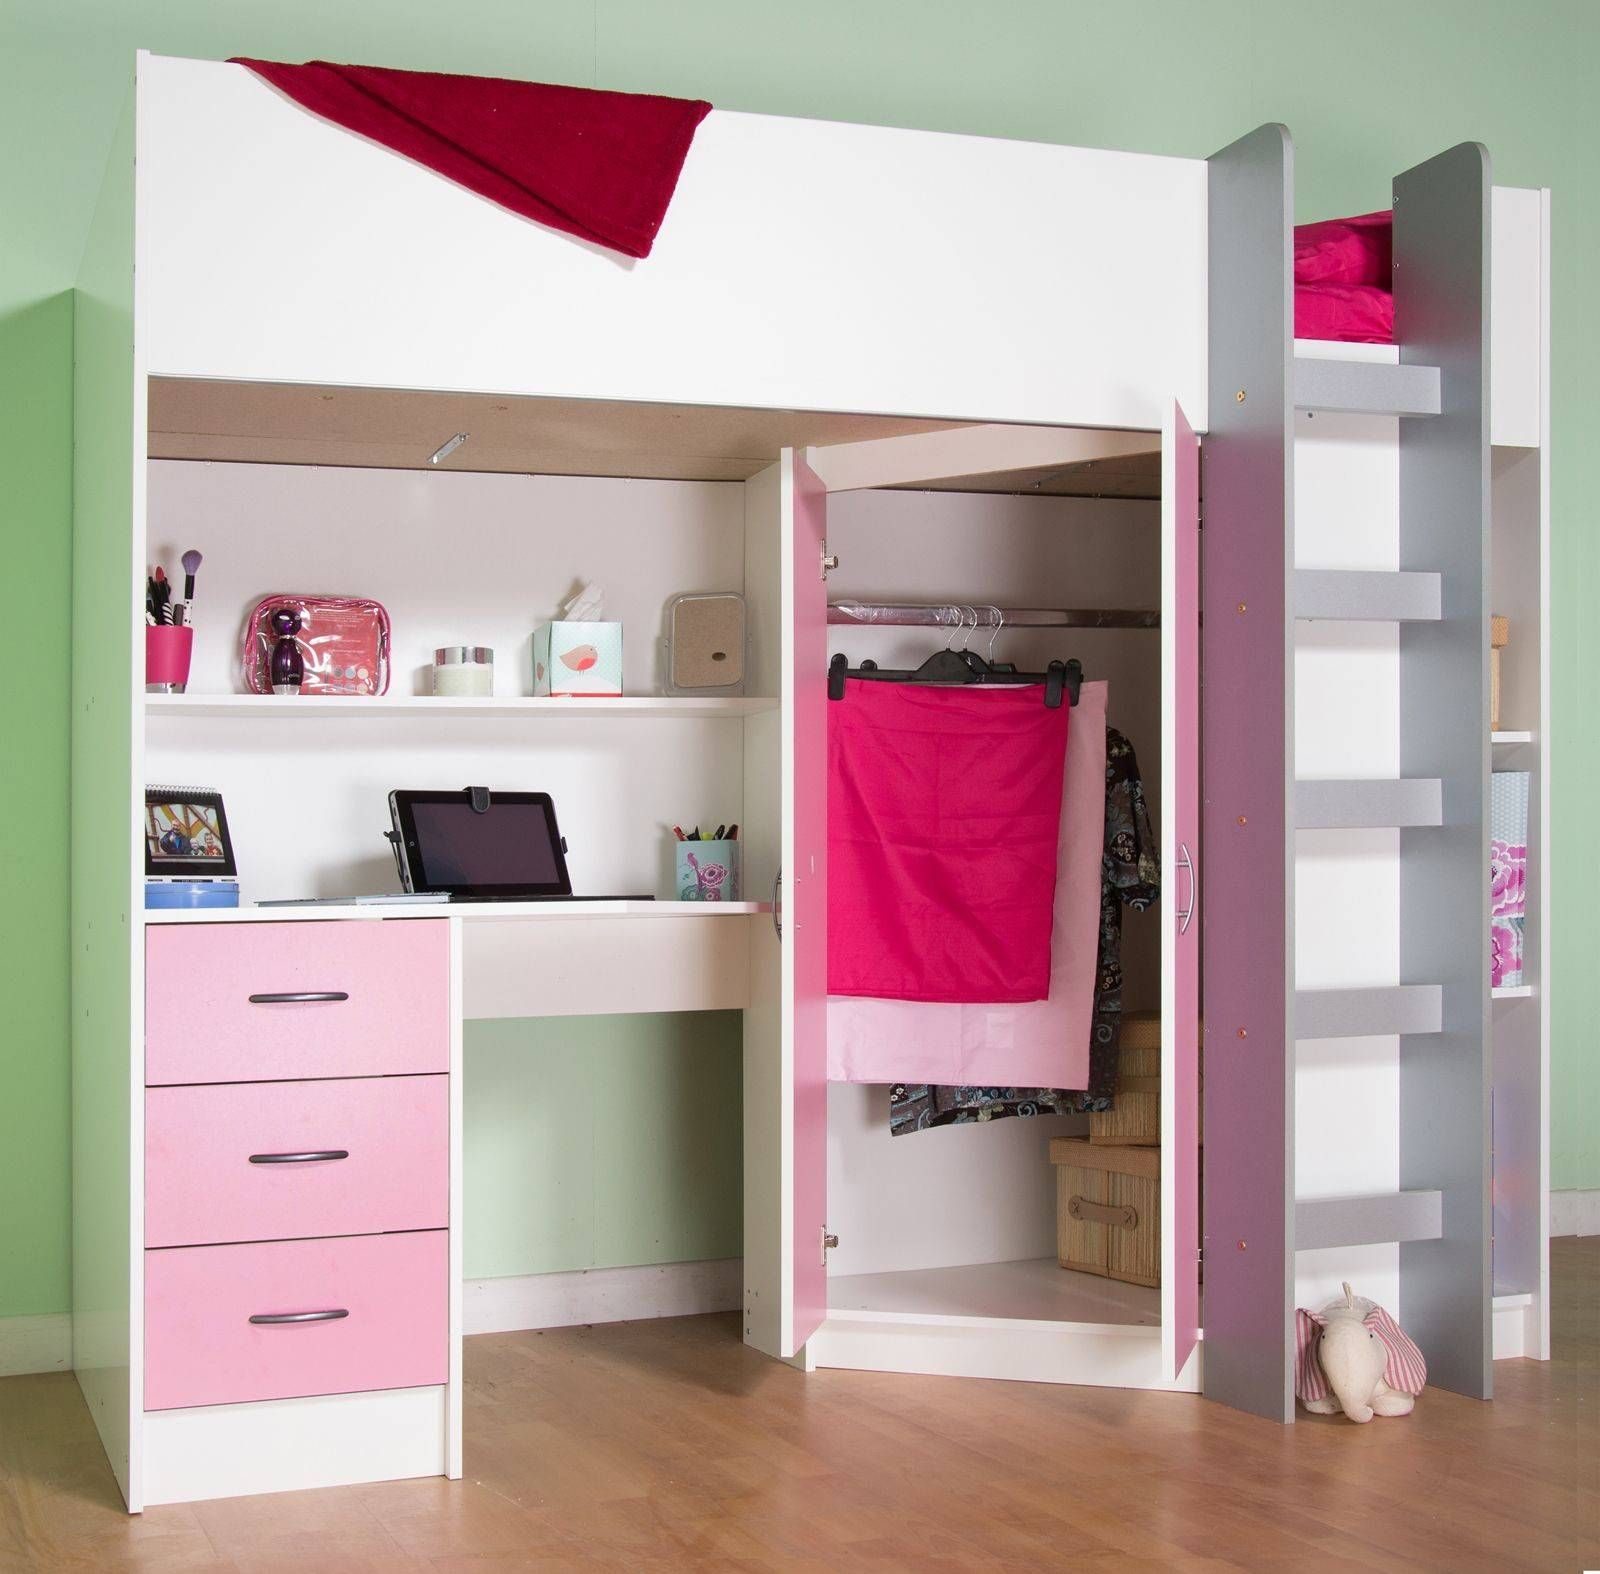 14 Lovely Bunk Bed Adelaide Check More At Http Ea Italy 2011